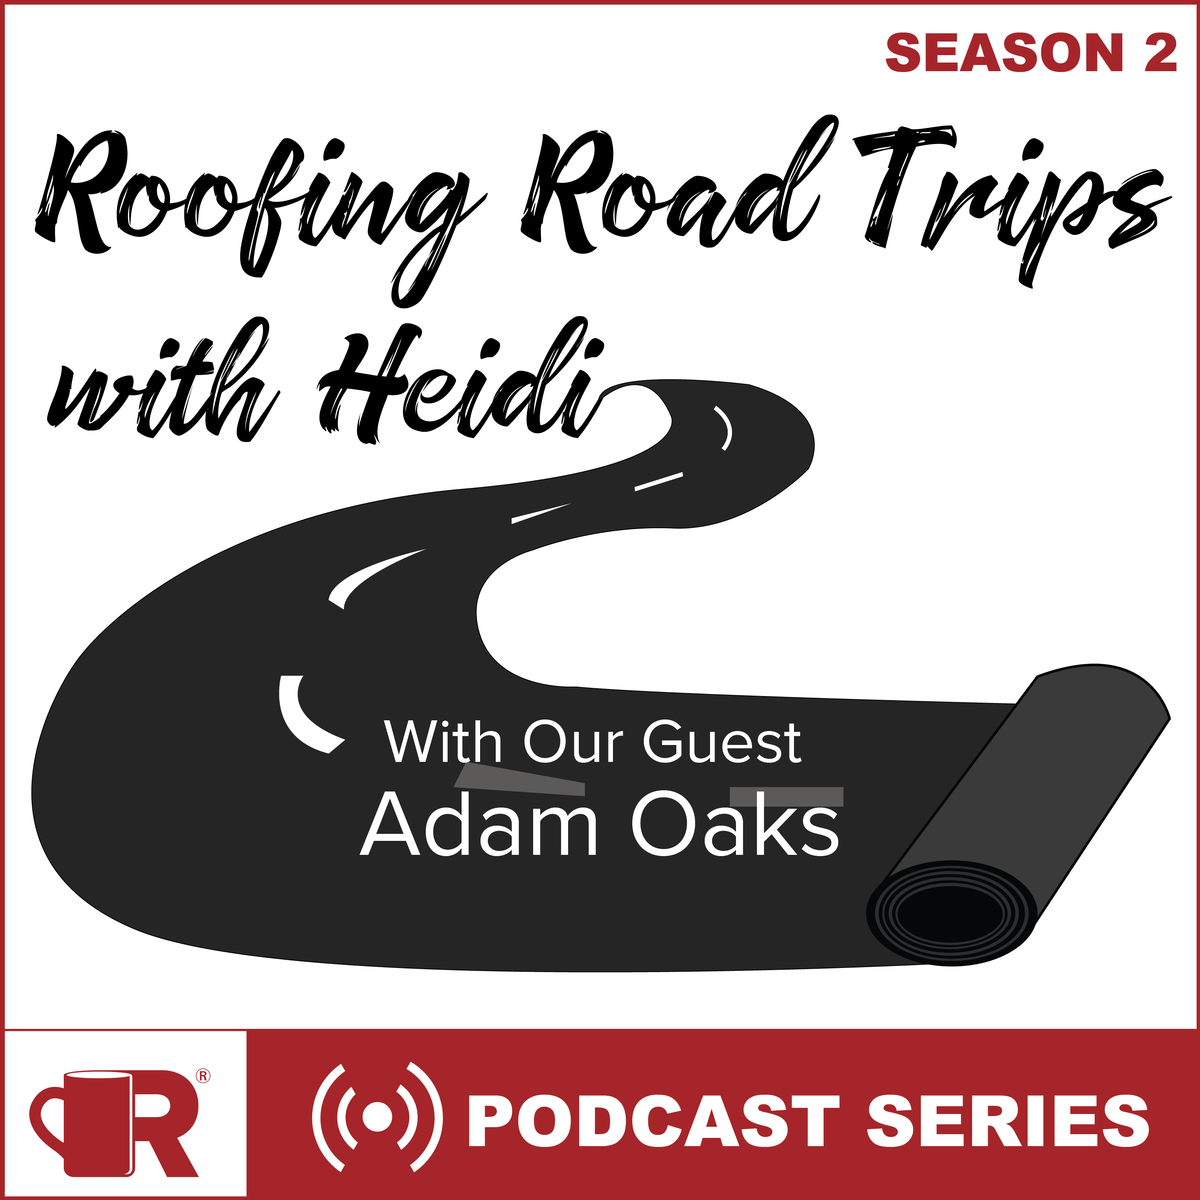 Roofing Road Trip with Adam Oaks